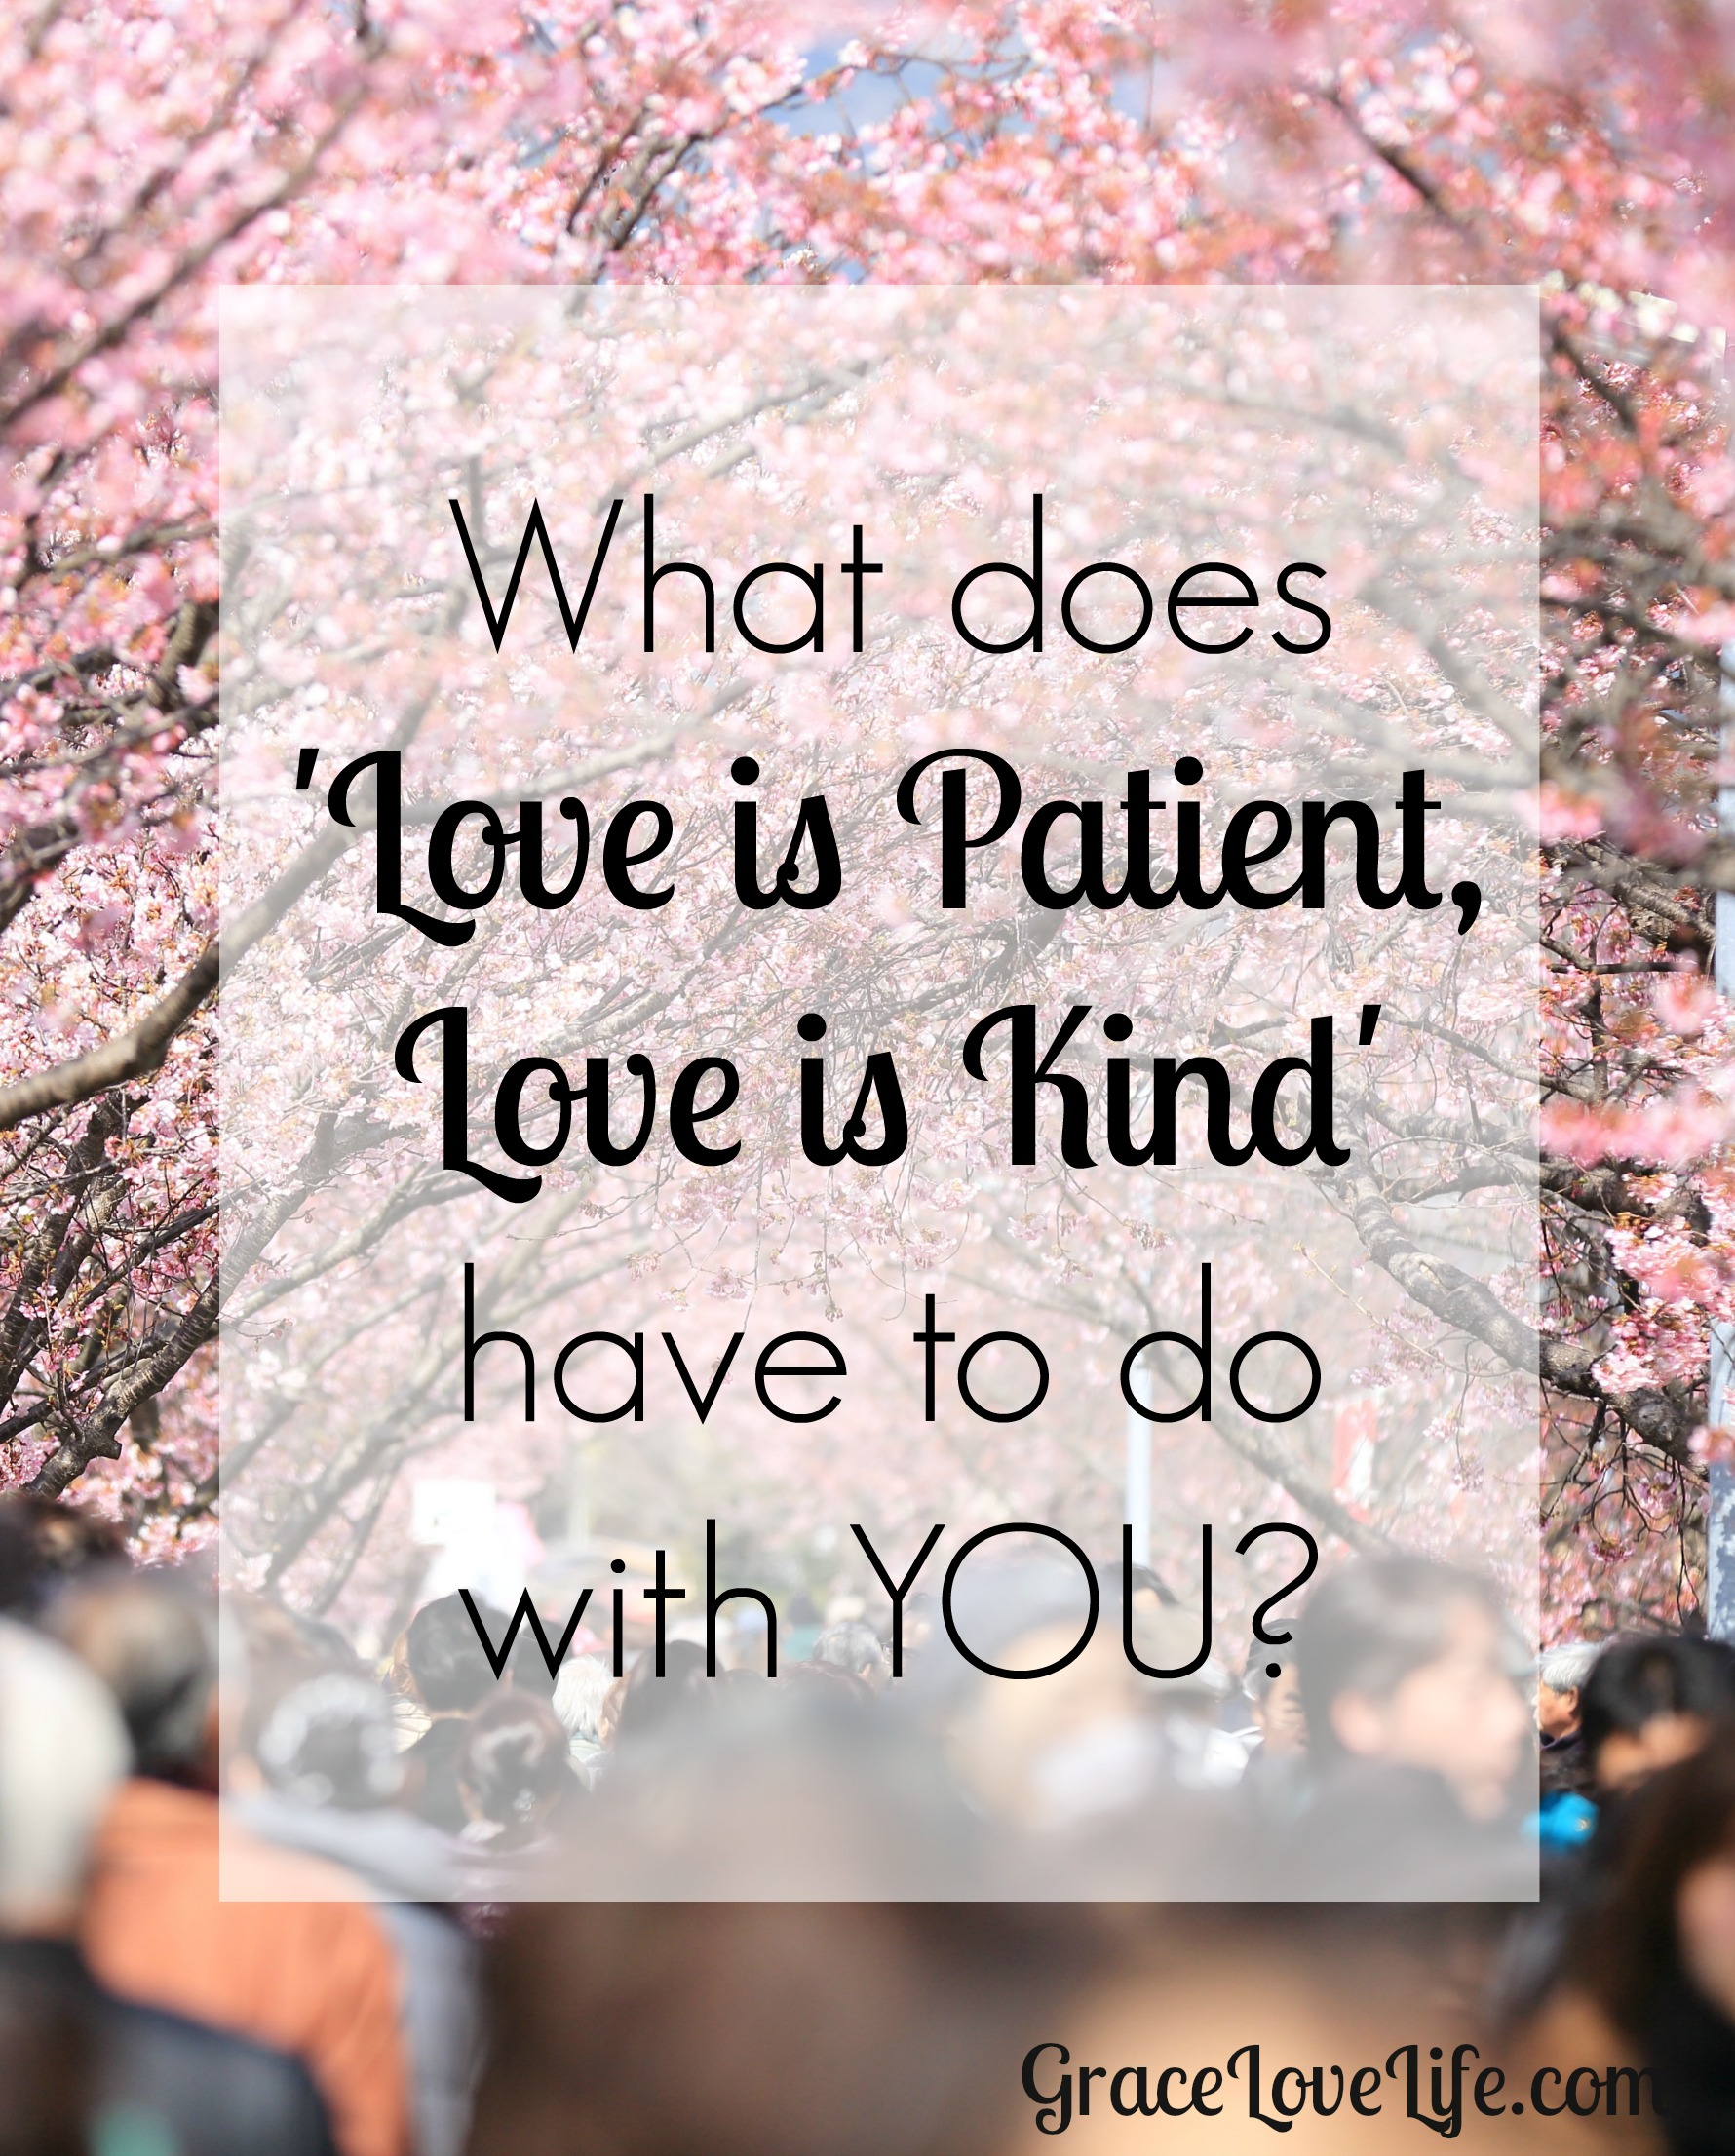 Love Is Patient Love Is Kind Quote: What Does 'Love Is Patient, Love Is Kind' Have To Do With